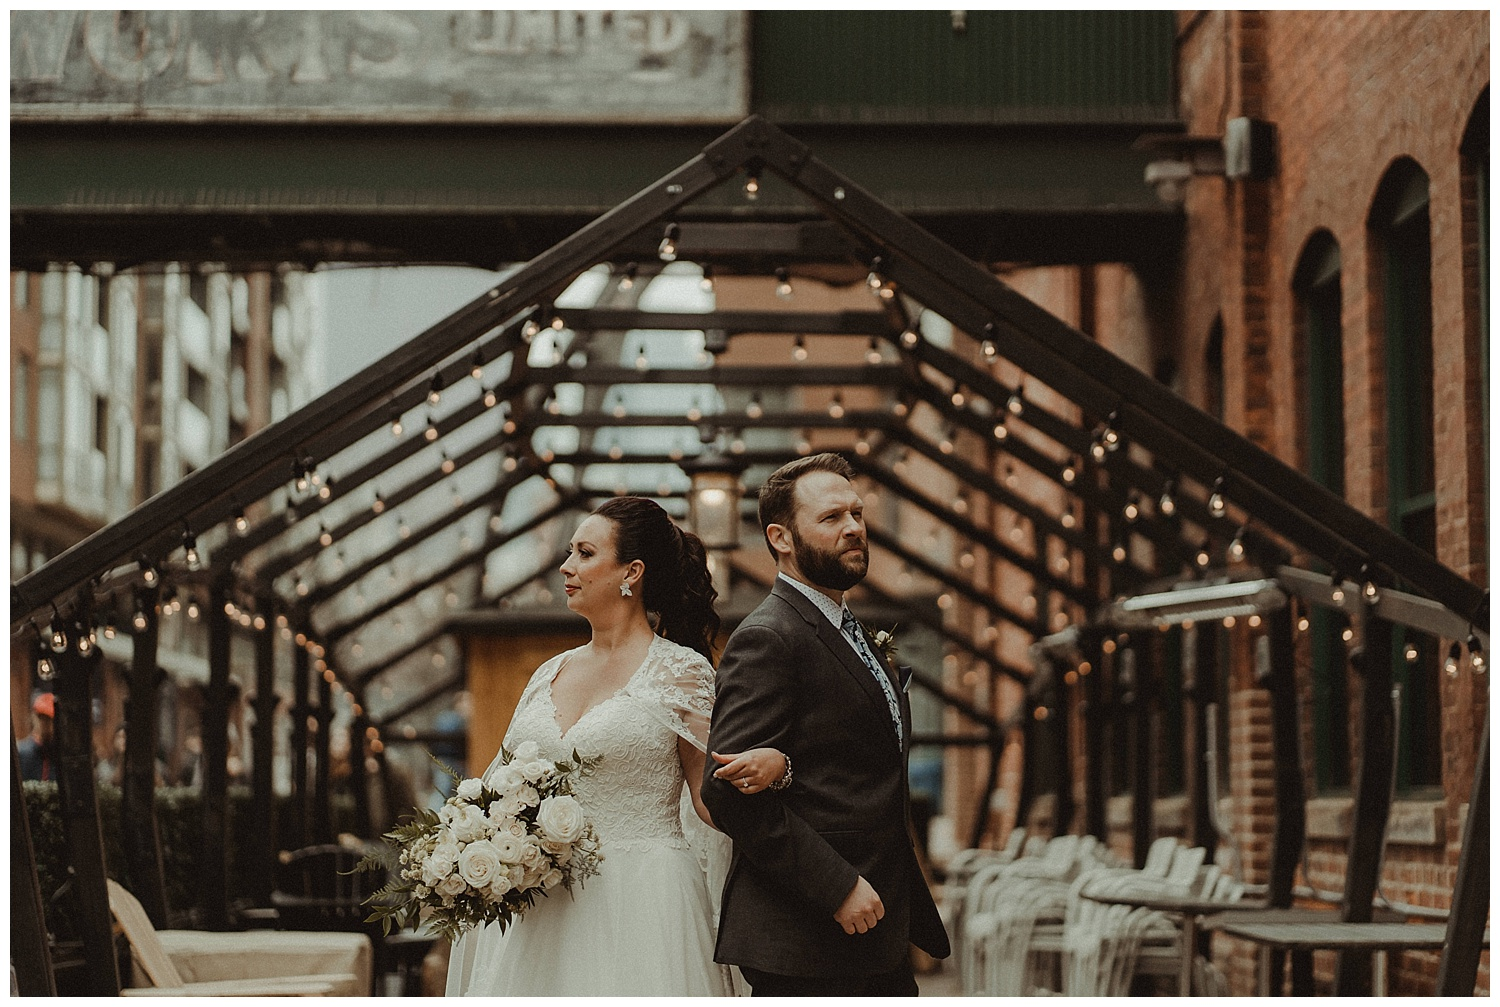 Katie Marie Photography | Archeo Wedding Arta Gallery Wedding | Distillery District Wedding | Toronto Wedding Photographer | Hamilton Toronto Ontario Wedding Photographer |_0028.jpg